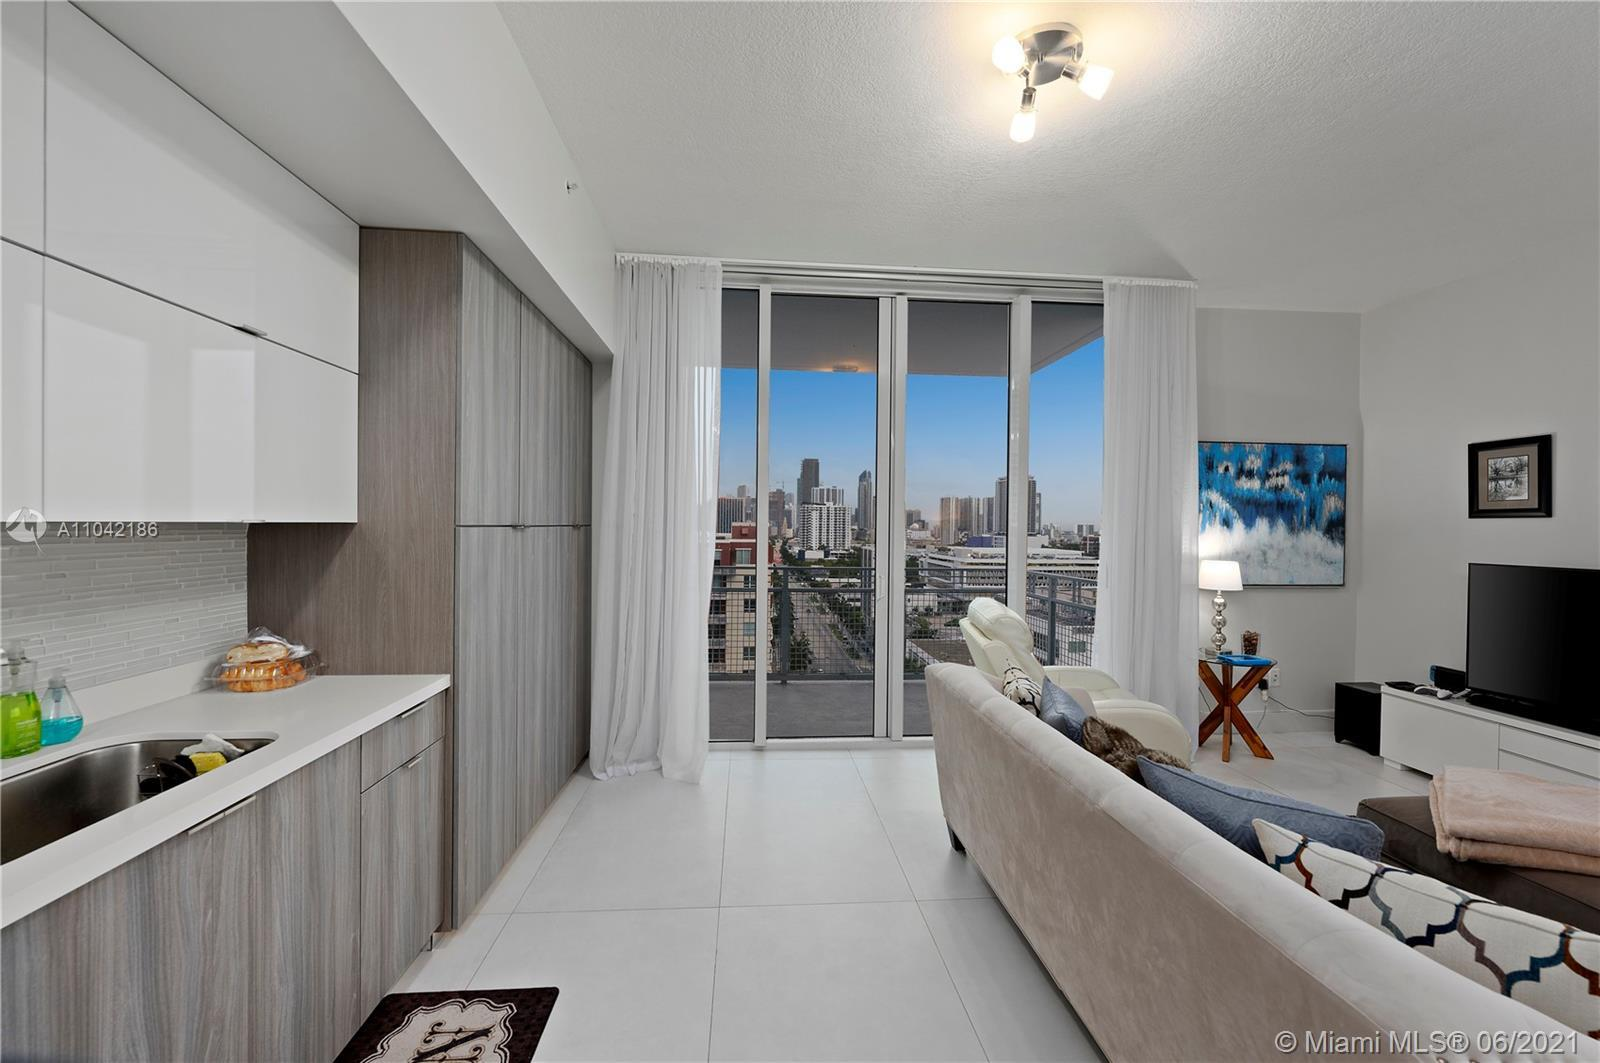 REMODELED CORNER CONDO WITH SOUTHWEST VIEWS.REPLETE WITH UPGRADES: BRAND NEW OVERSIZE PORCELAIN FLOO